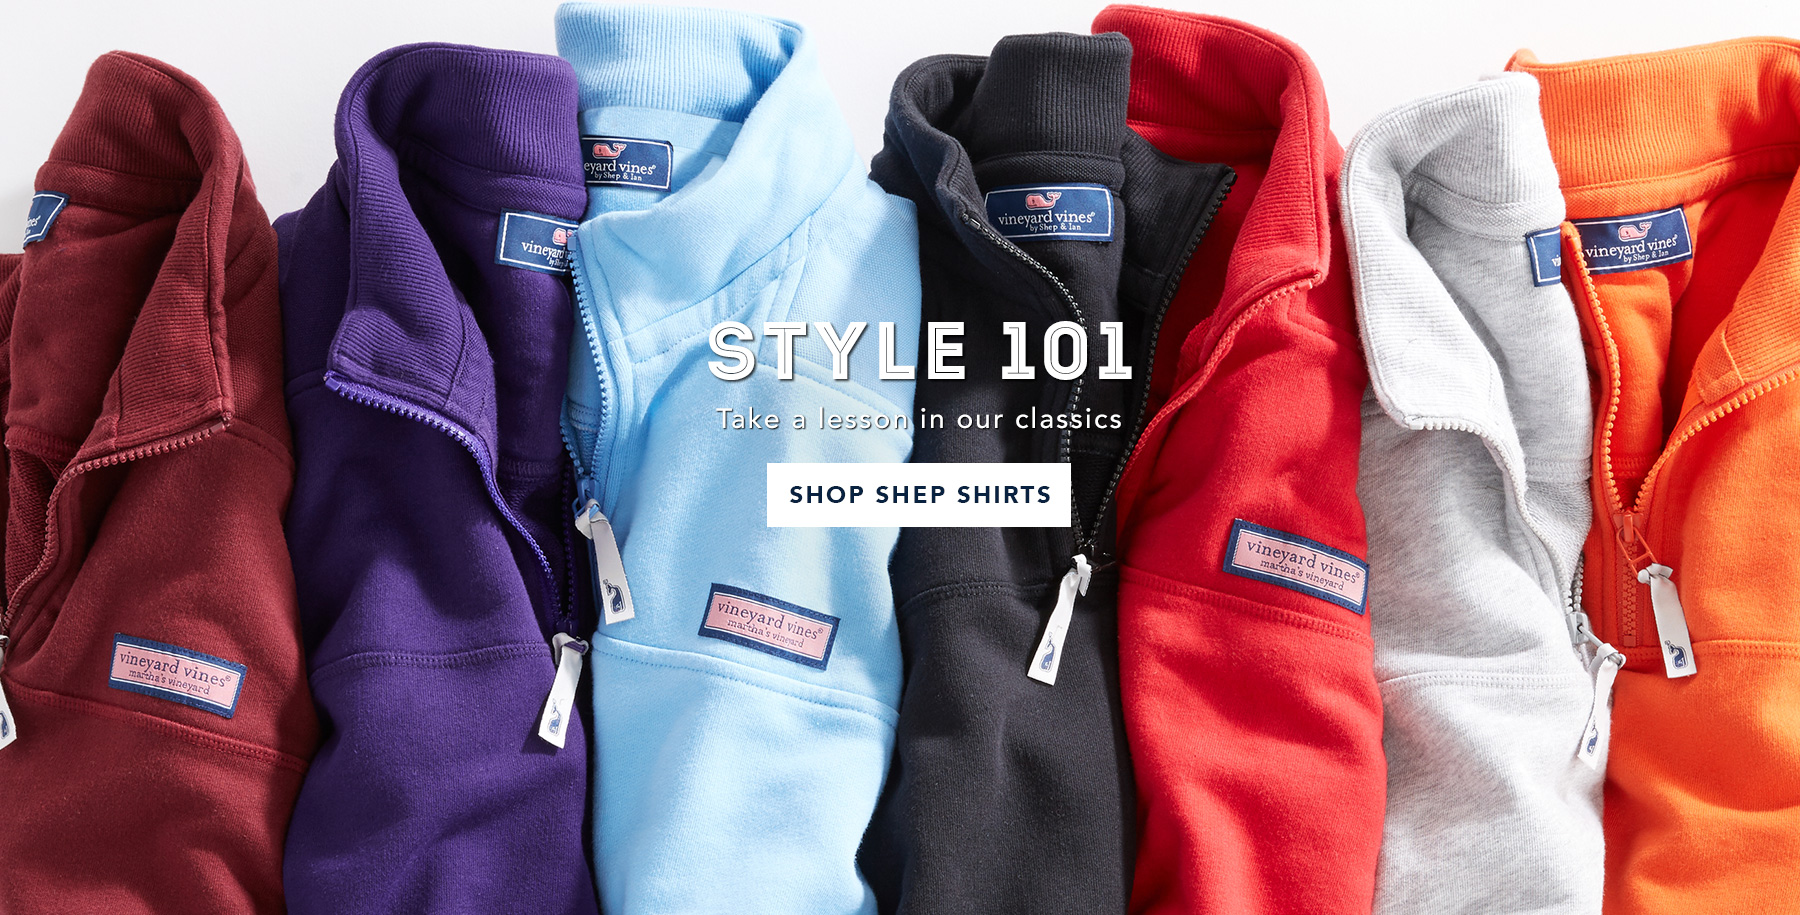 Style 101. Take a lesson in our classics. Shop Shep Shirts.